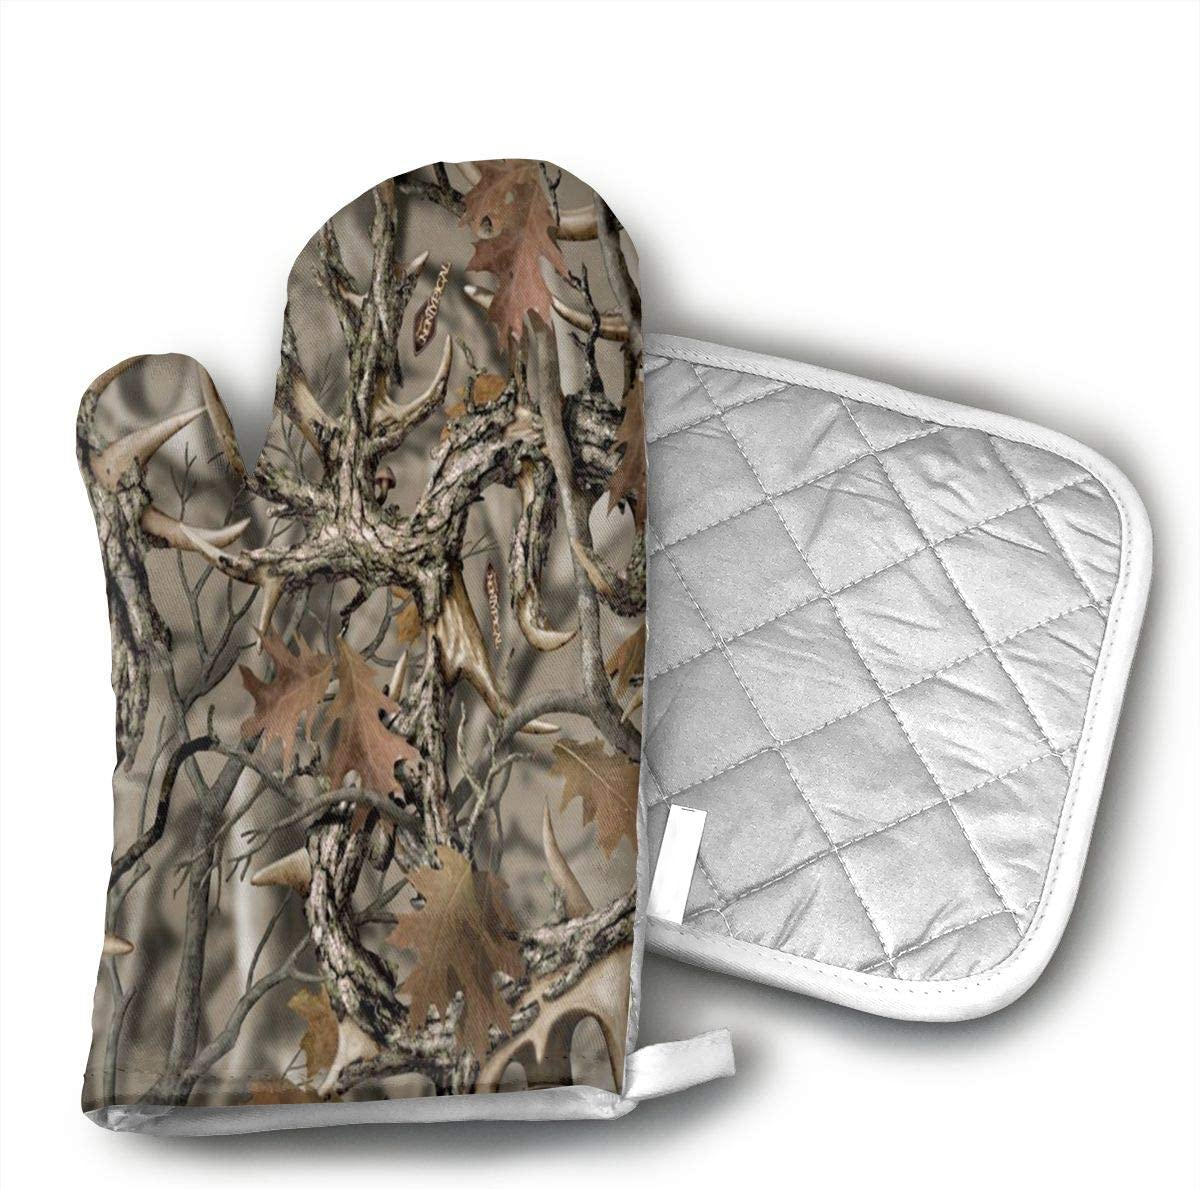 Ydsgjds Realtree Camo Oven Mitts and BBQ Gloves Pot Holders, Heat Resistant Mitts for Finger Hand Wrist Protection with Inner Lining, Kitchen Gloves for Grilling Machine Baking Grilling with Non-Slip